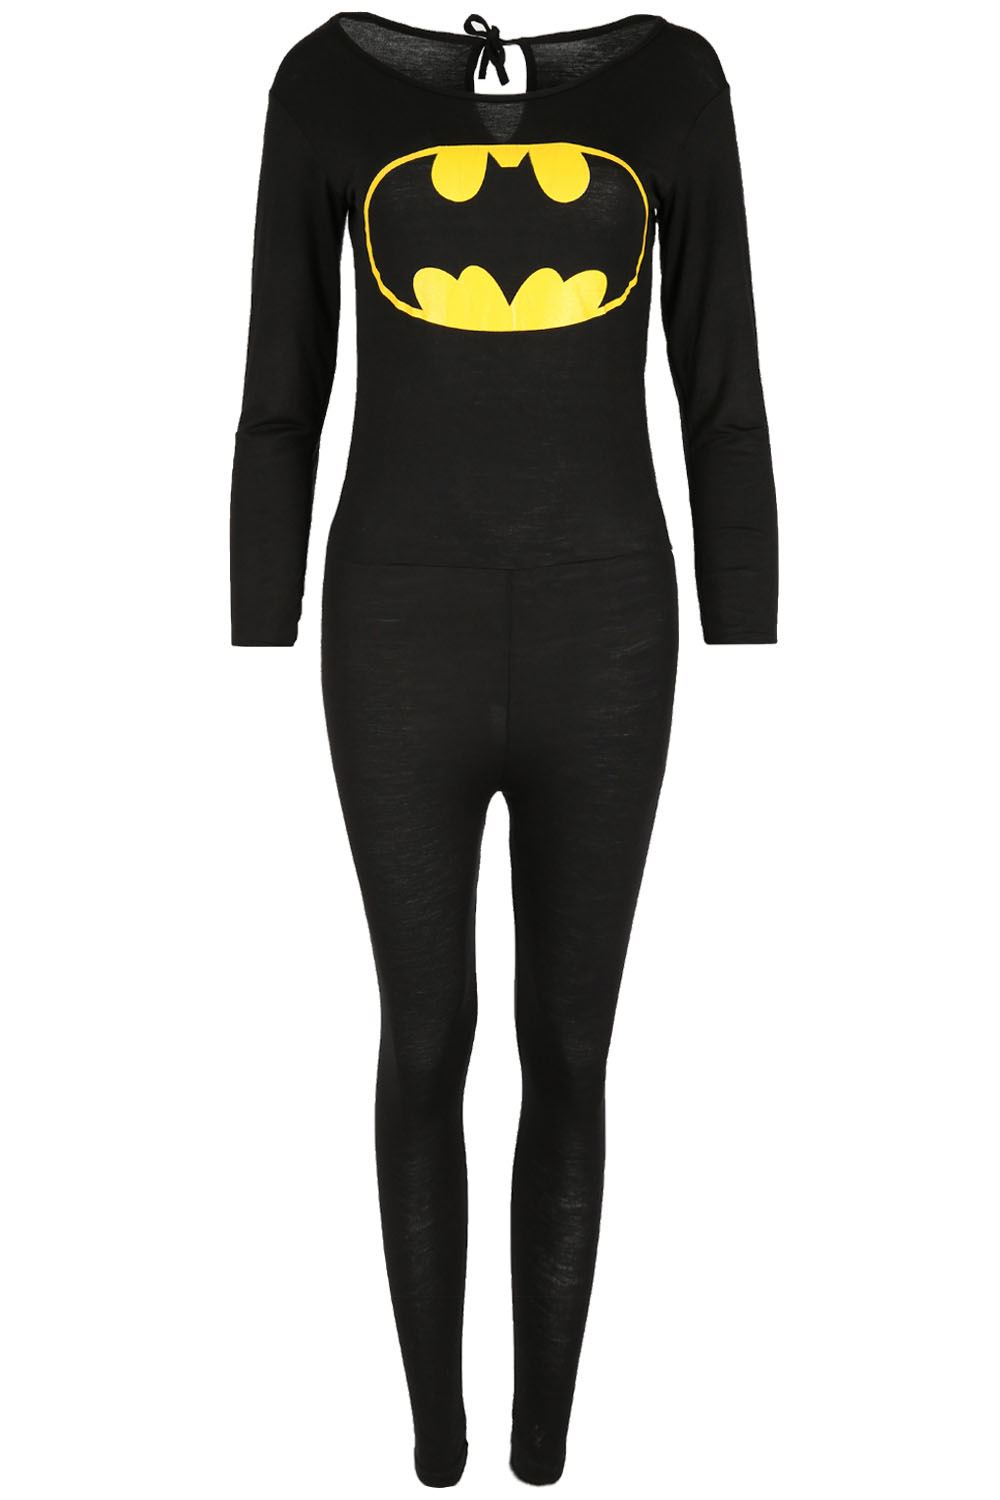 Find batman onesie from a vast selection of Baby and Toddler Clothing and Accessories. Get great deals on eBay! Batman Logo Funny Novelty Baby Onesie Boy Girl Clothes Bodysuit Blakenreag. New (Other) $ Buy It Now. Free Shipping. Straight Outta Arkham Gerber Onesie | Batman Game Comic DC Joker Baby Romper. Brand New · Gerber. $